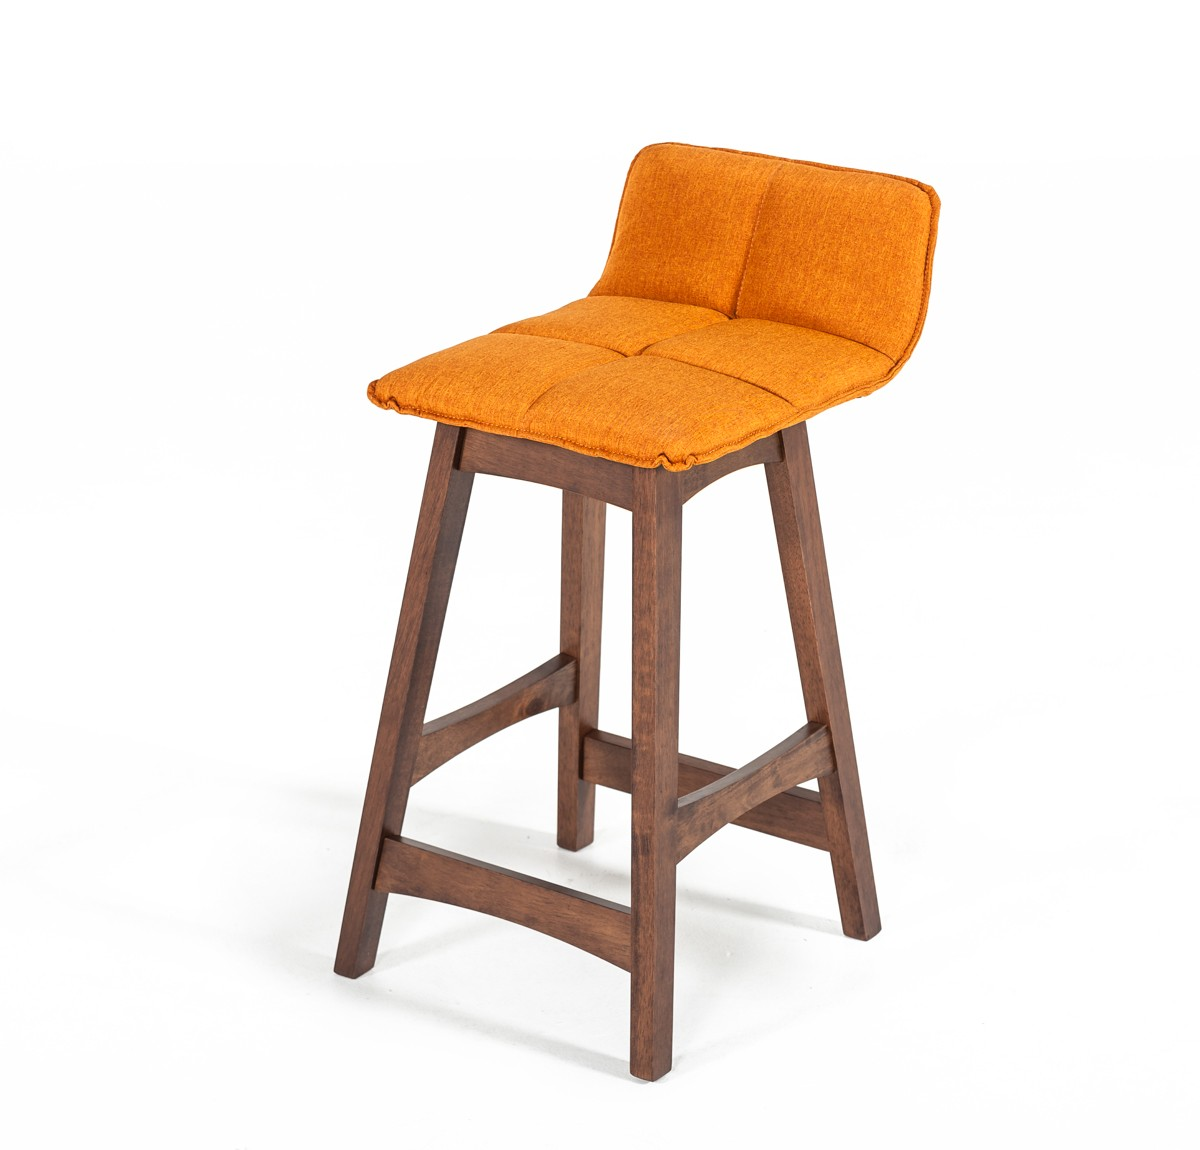 2pcs Orange Amp Walnut Bar Stool Shop For Affordable Home